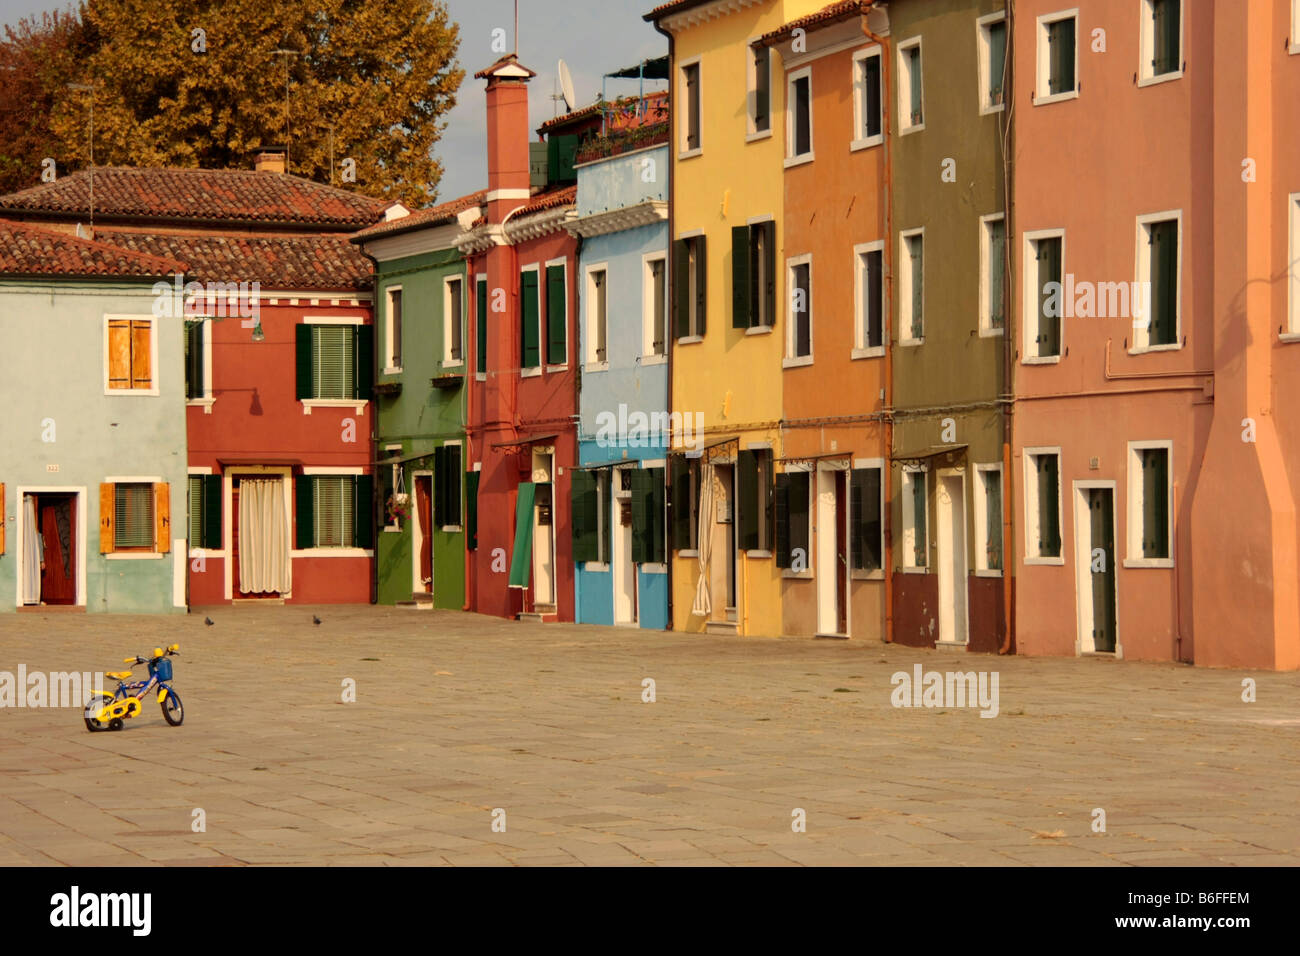 Island of Burano in the Venetian Lagoon, renowned for its colorfully painted houses, Veneto, Italy, Europe Stock Photo